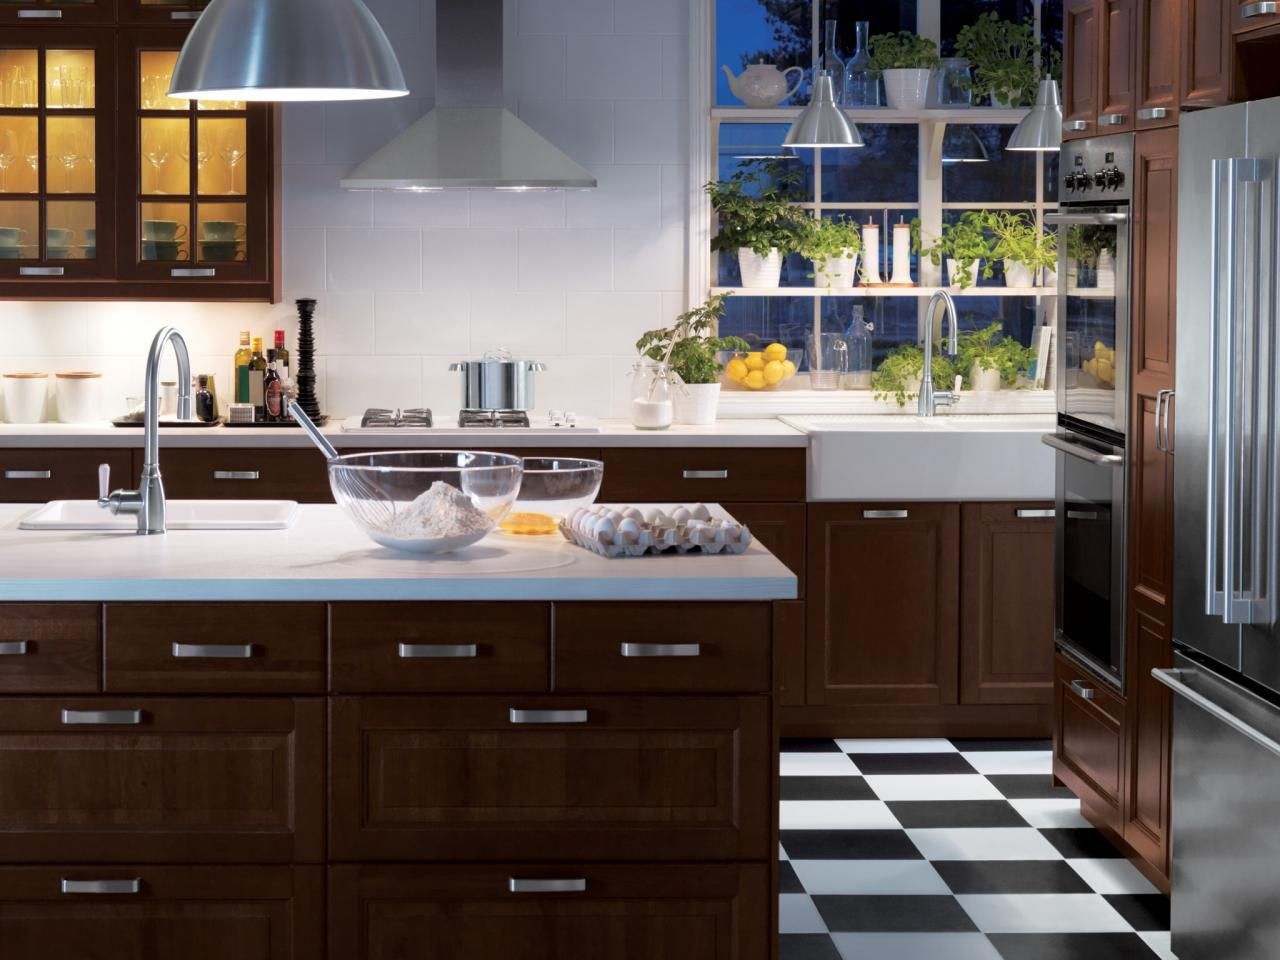 Modular Kitchen Cabinets Pictures Ideas & Tips From Captivating Design Of Modular Kitchen Cabinets Design Inspiration